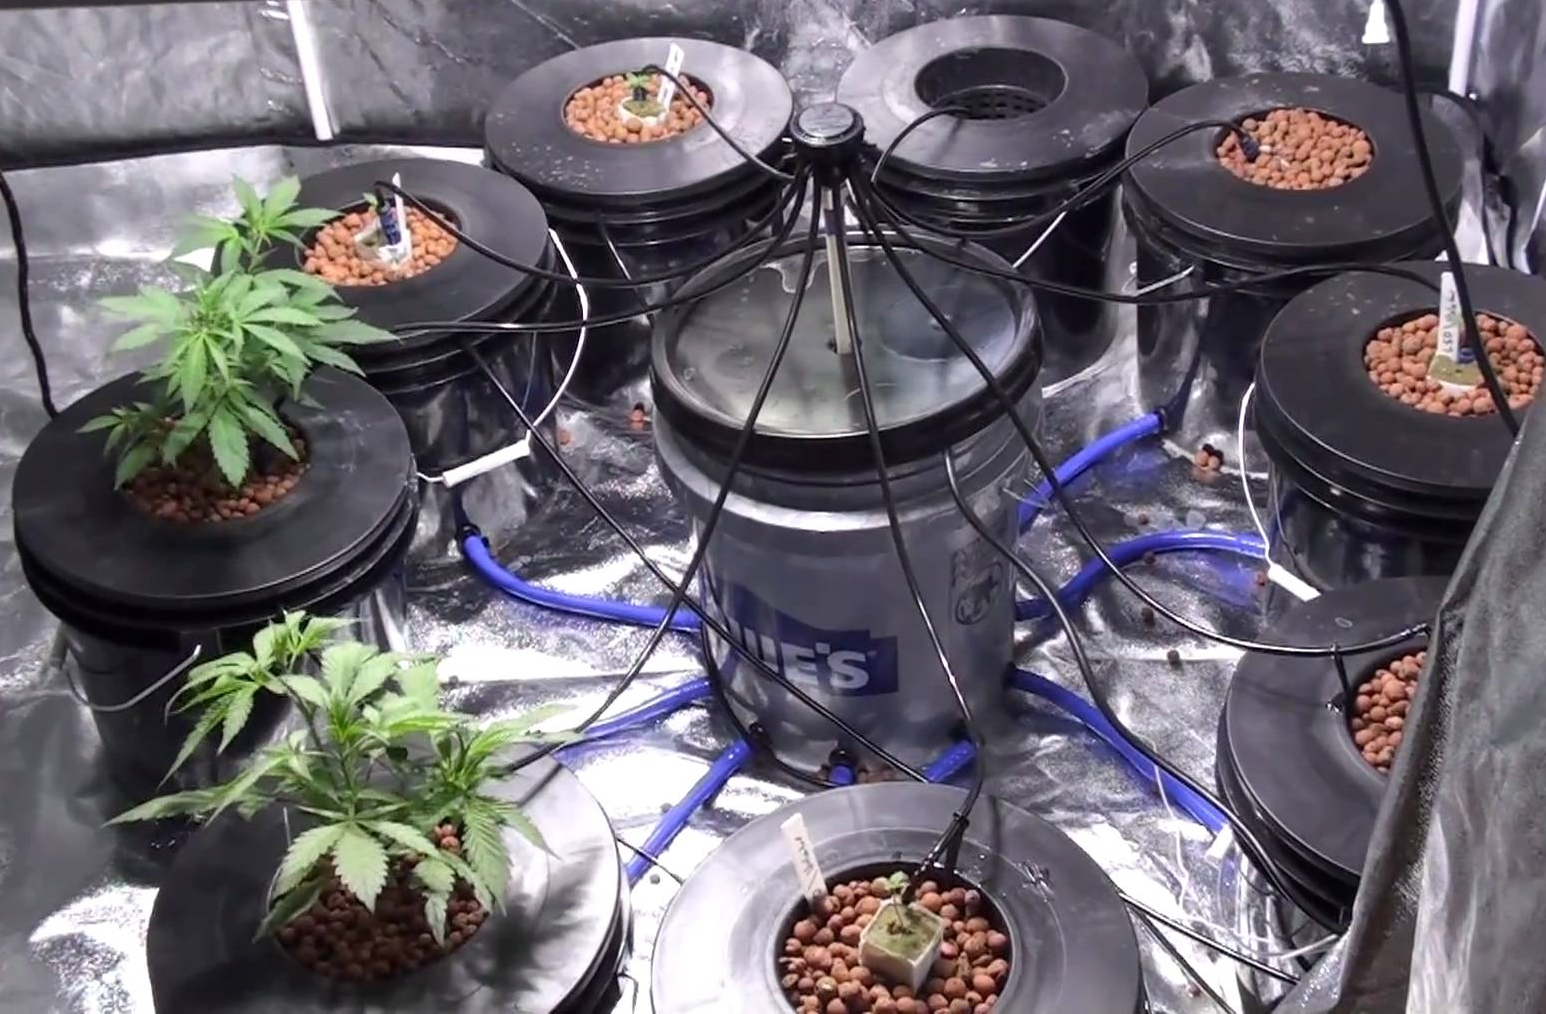 How To Grow Weed Indoors For Beginners The Ultimate Guide